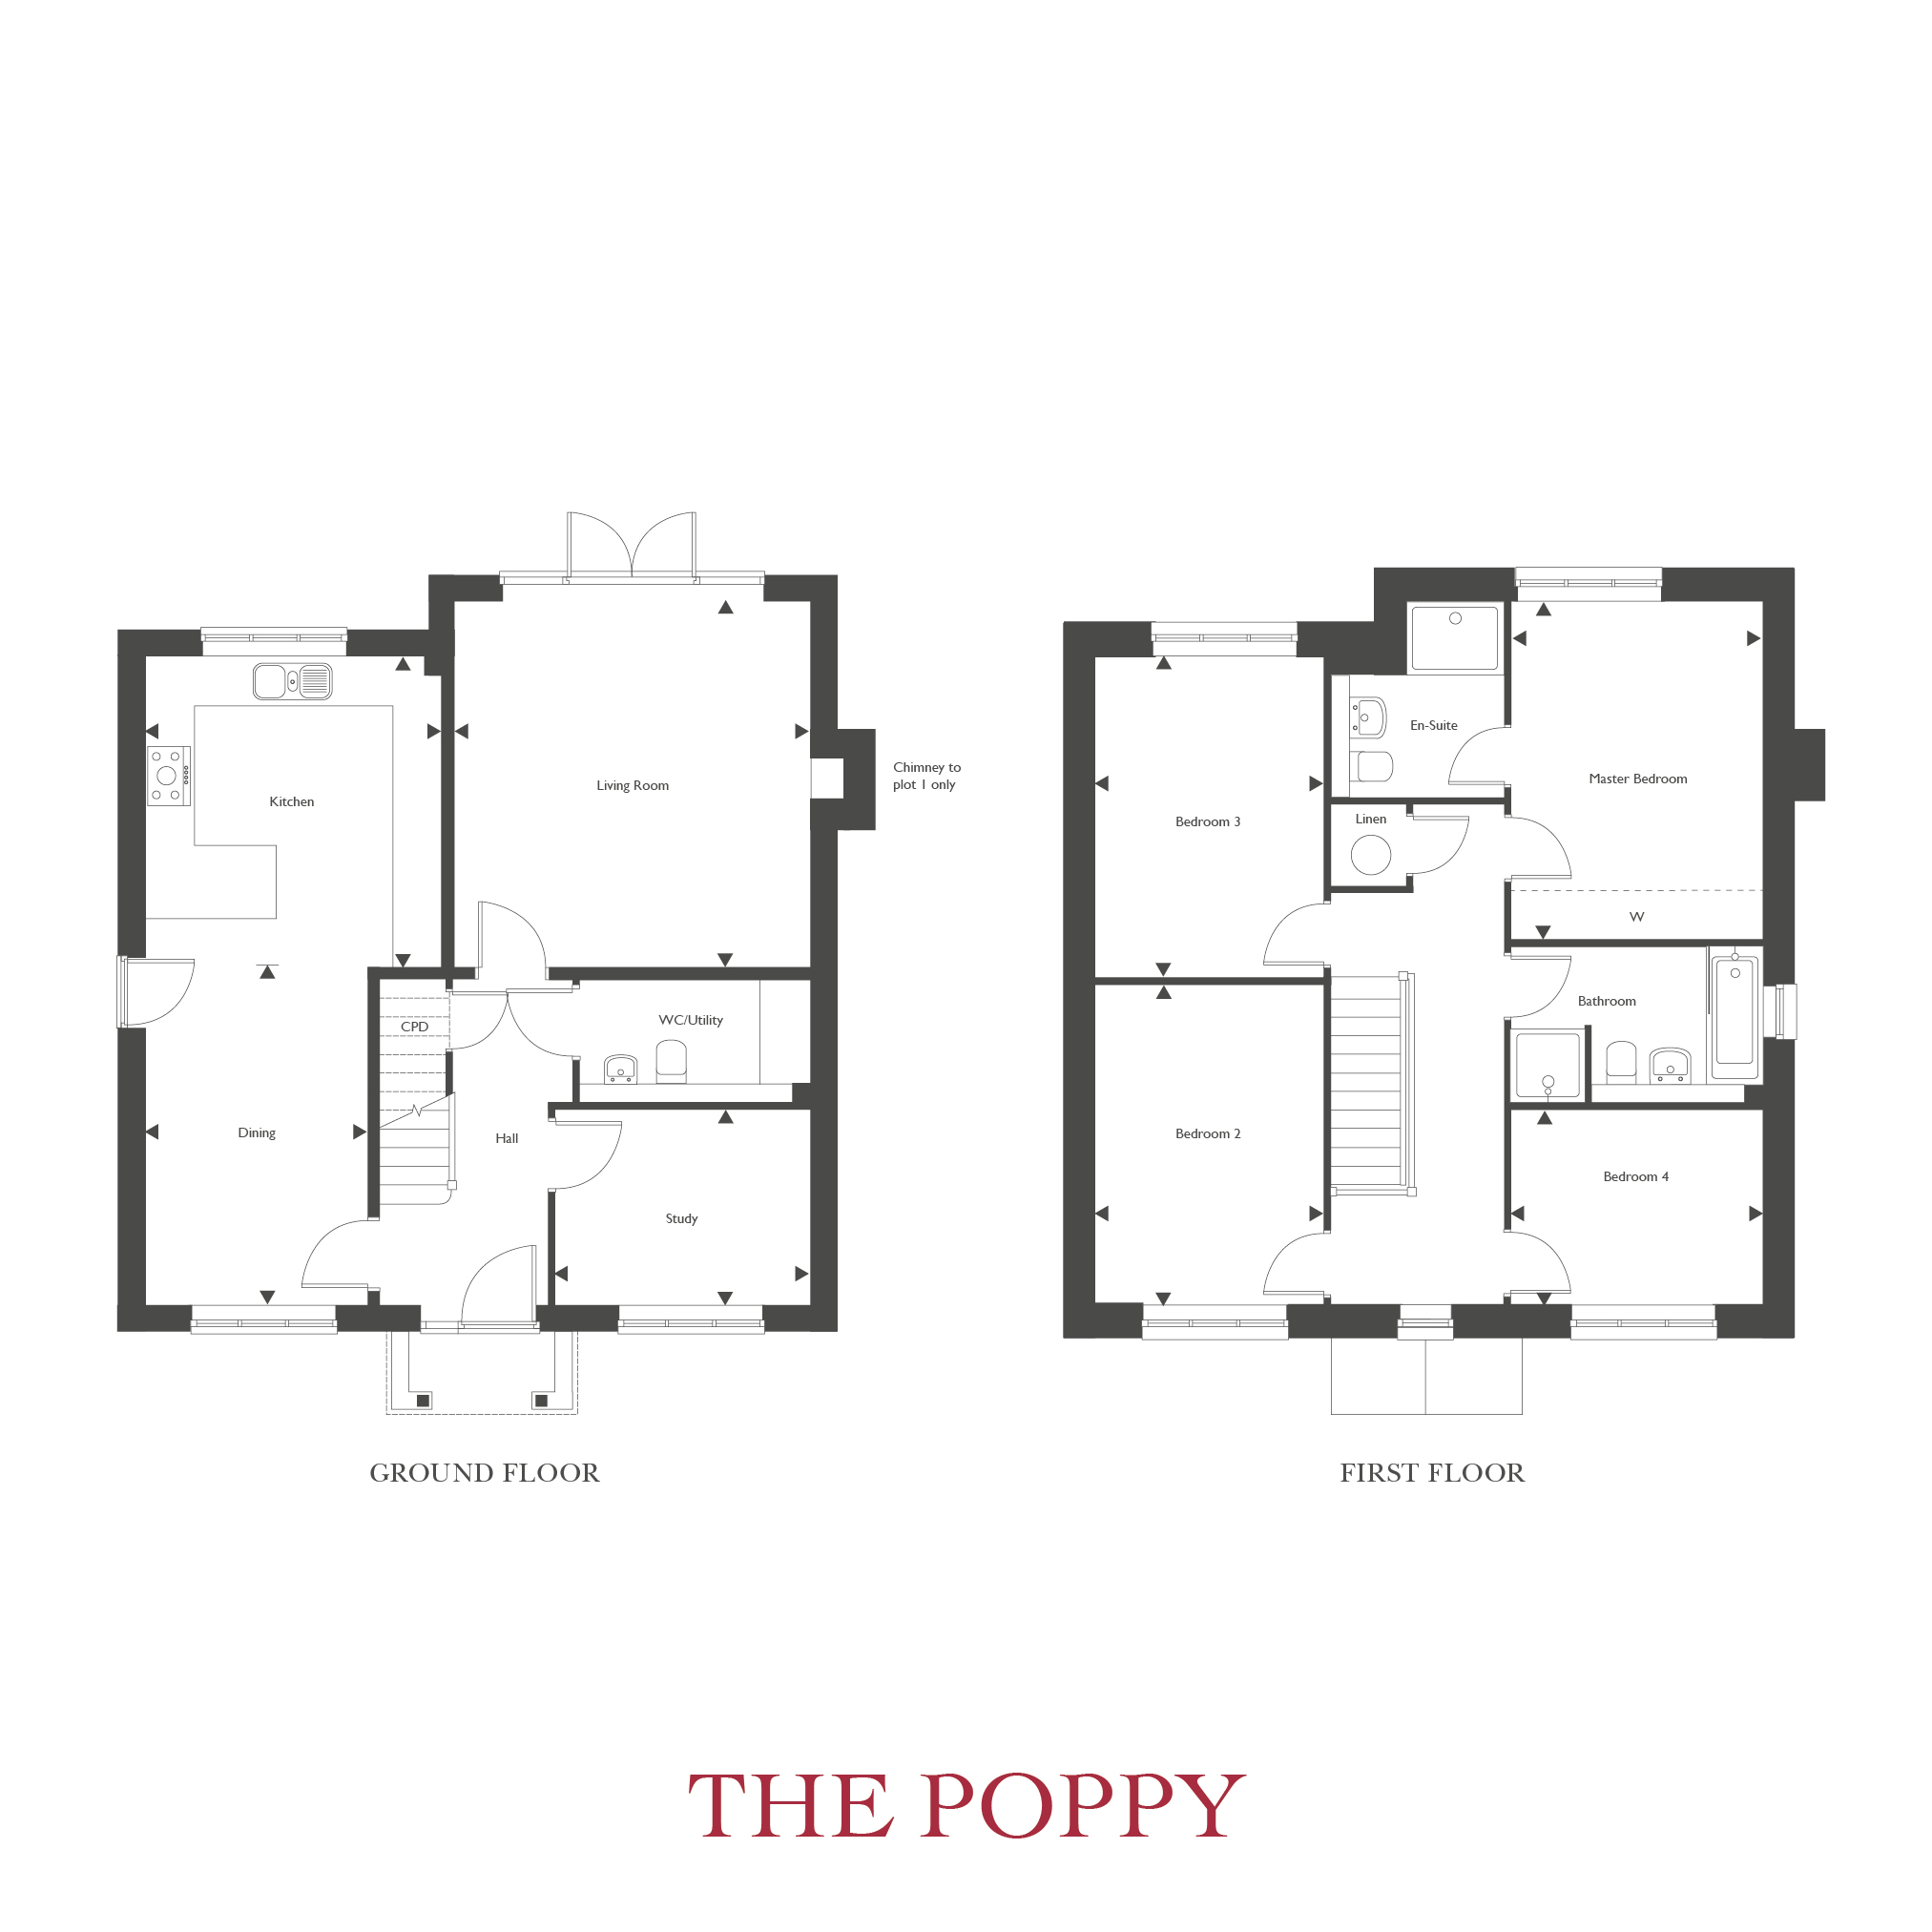 Plot 9 – The Poppy Floor plan